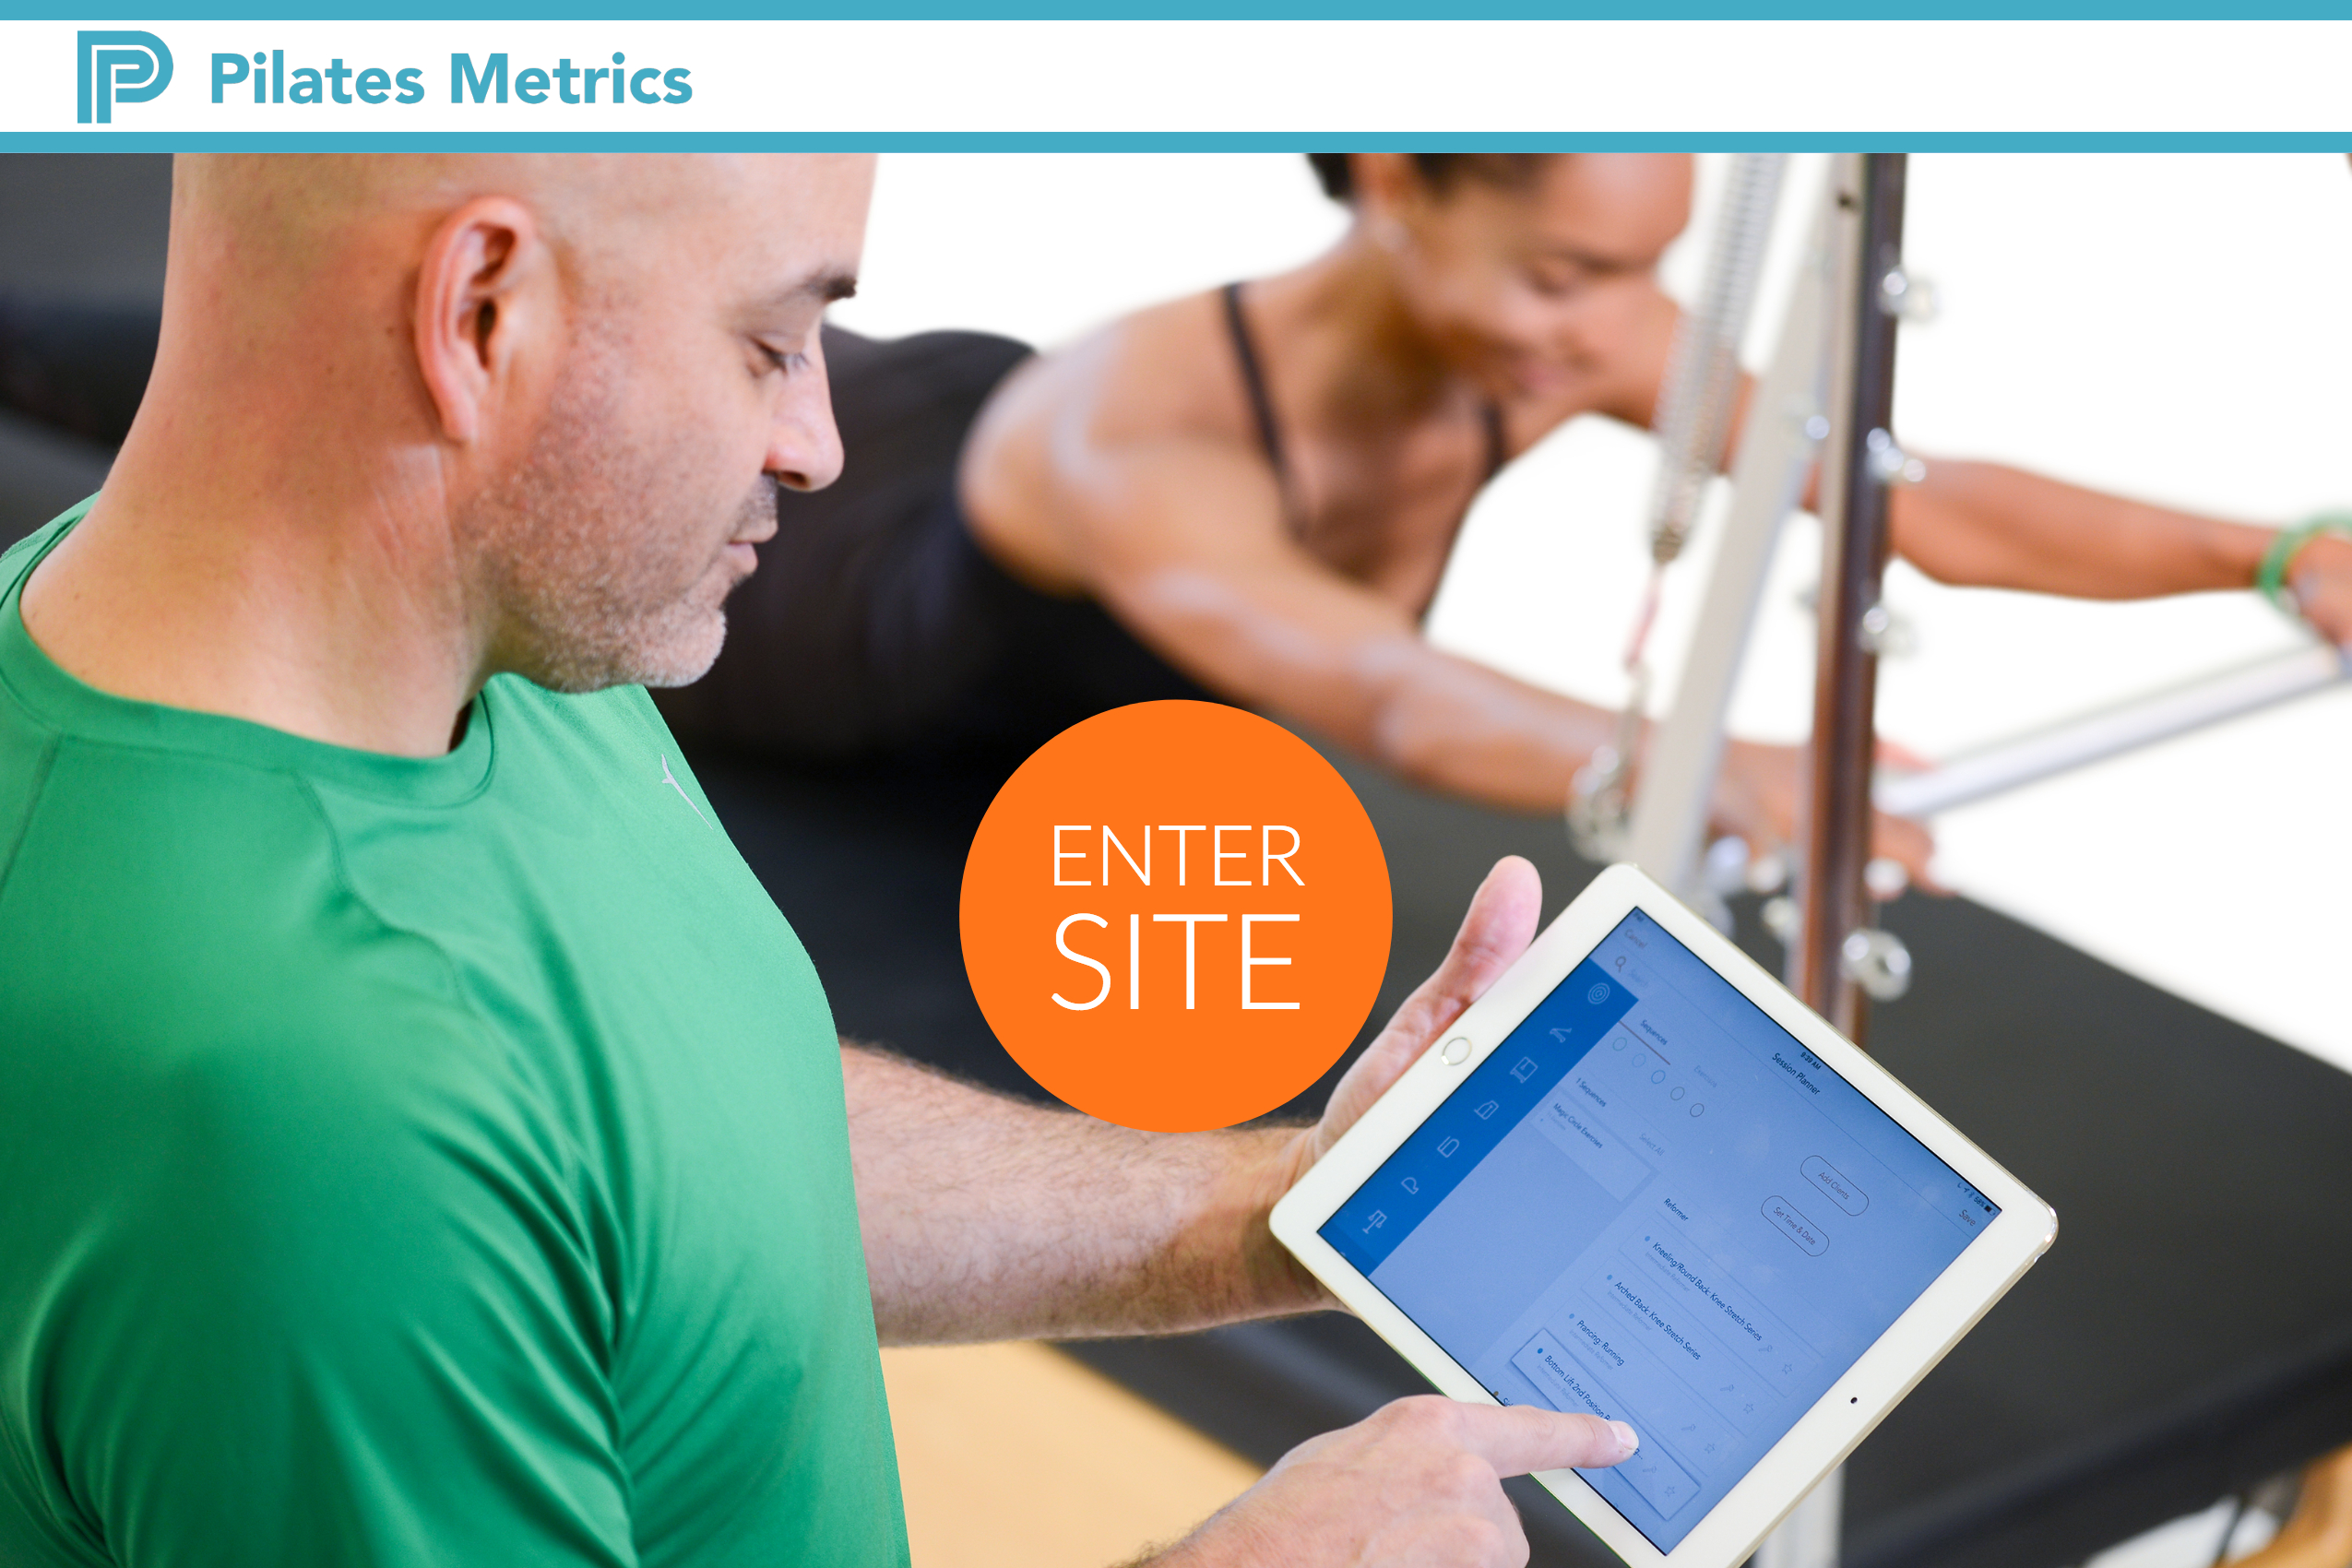 Pilates Metrics - Software for Pilates Instructors